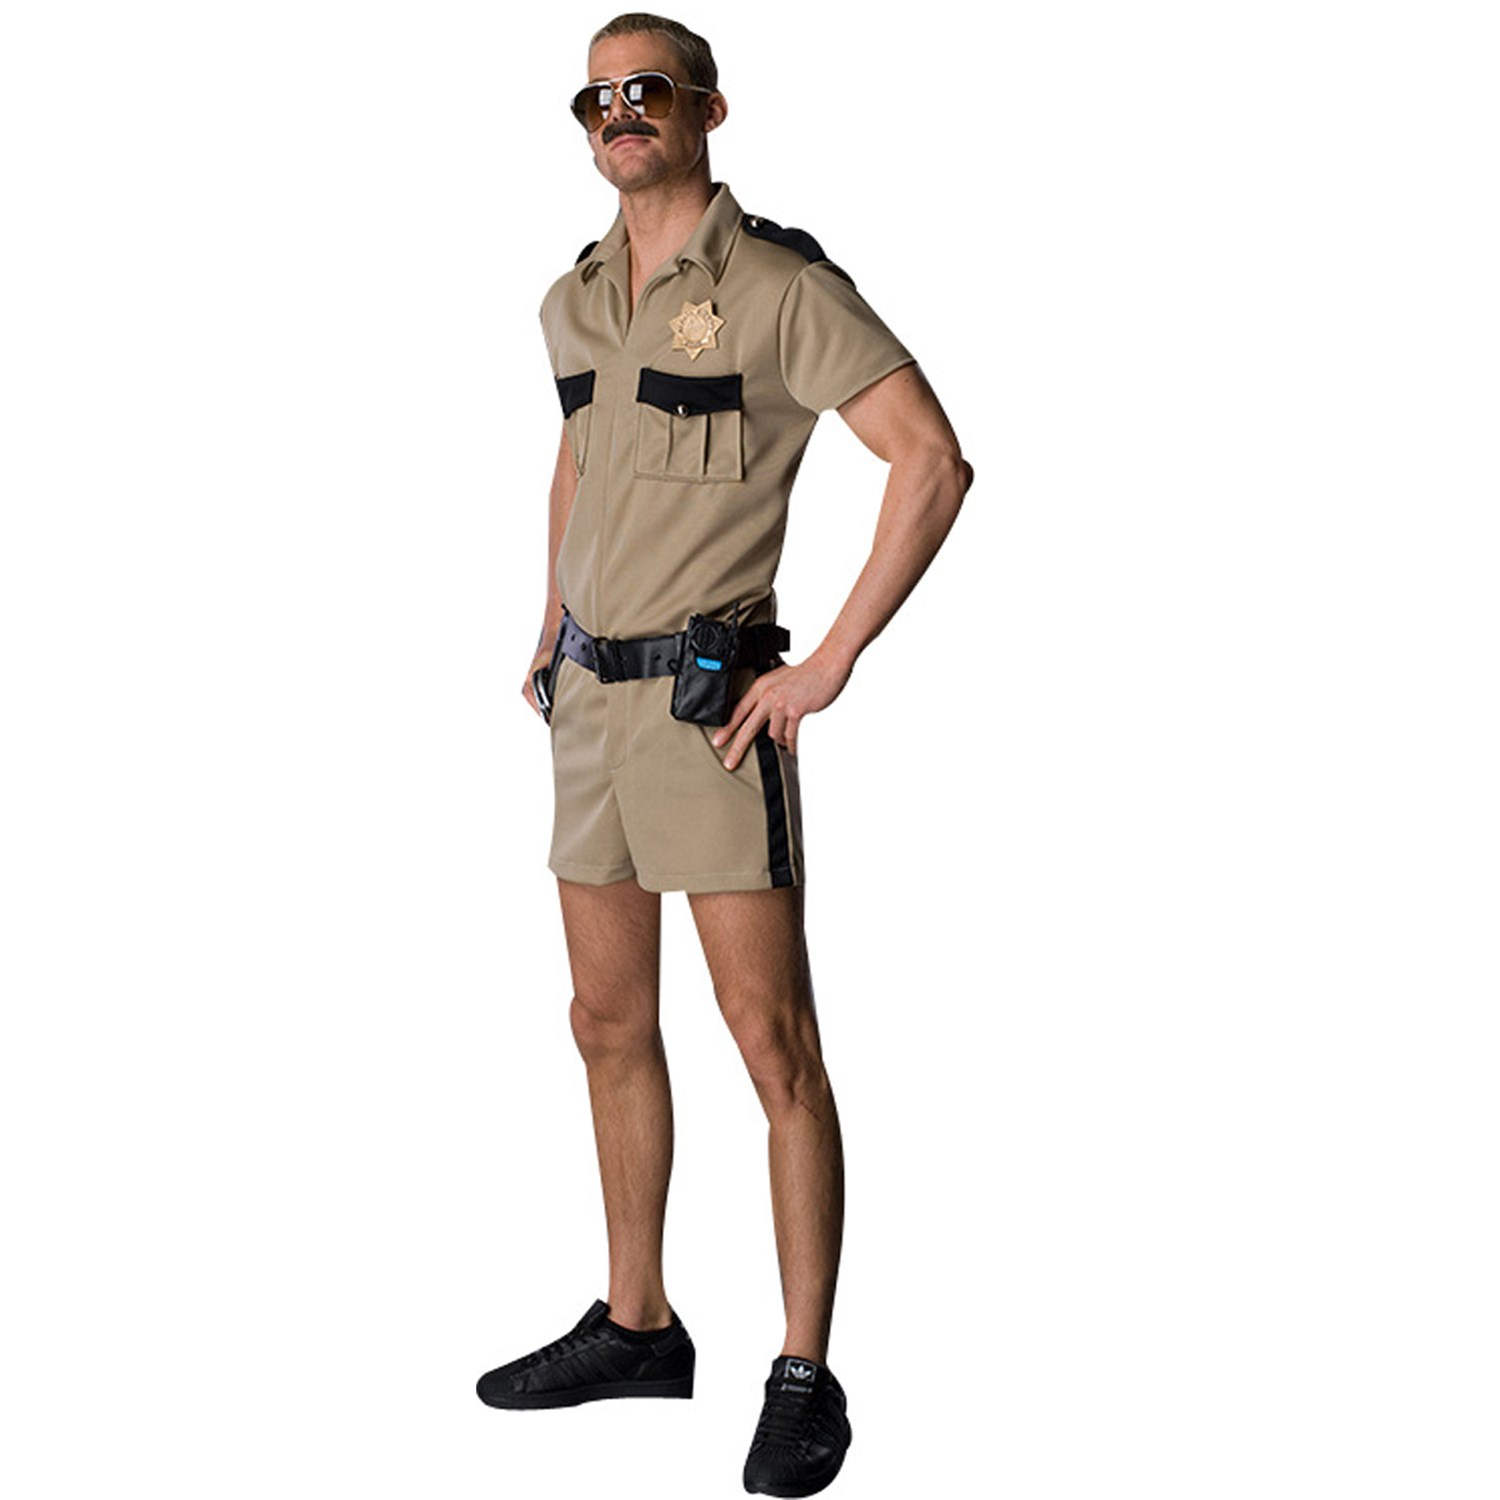 reno 911 lt dangle adult costume. Black Bedroom Furniture Sets. Home Design Ideas